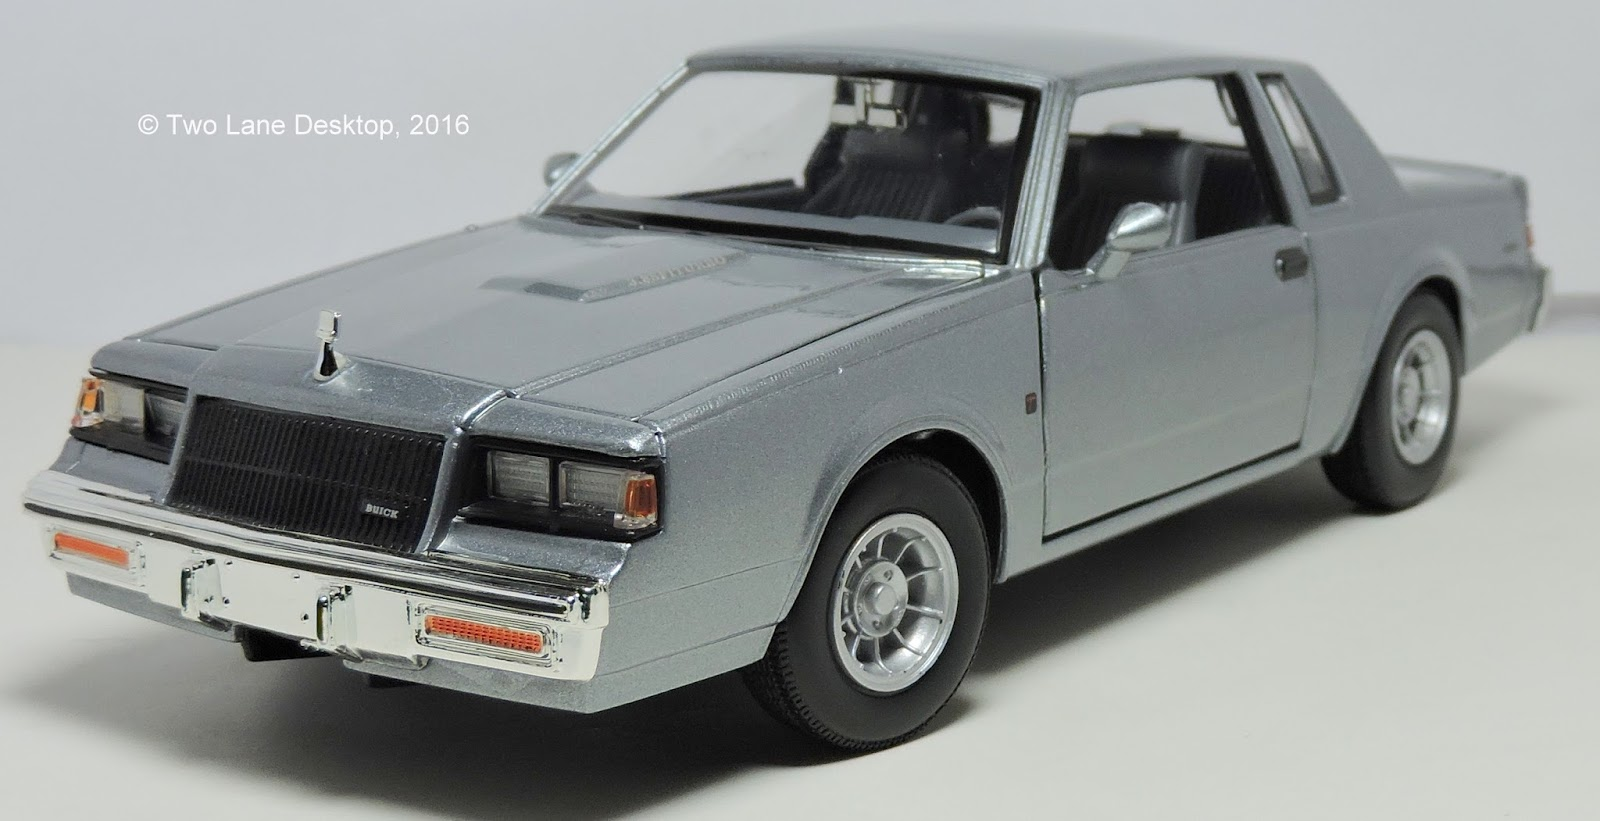 Buick T Type >> Two Lane Desktop: Motormax 1:24 1987 Buick Regal T-type and SunnySide 1:24 1987 Chevy Monte Carlo SS